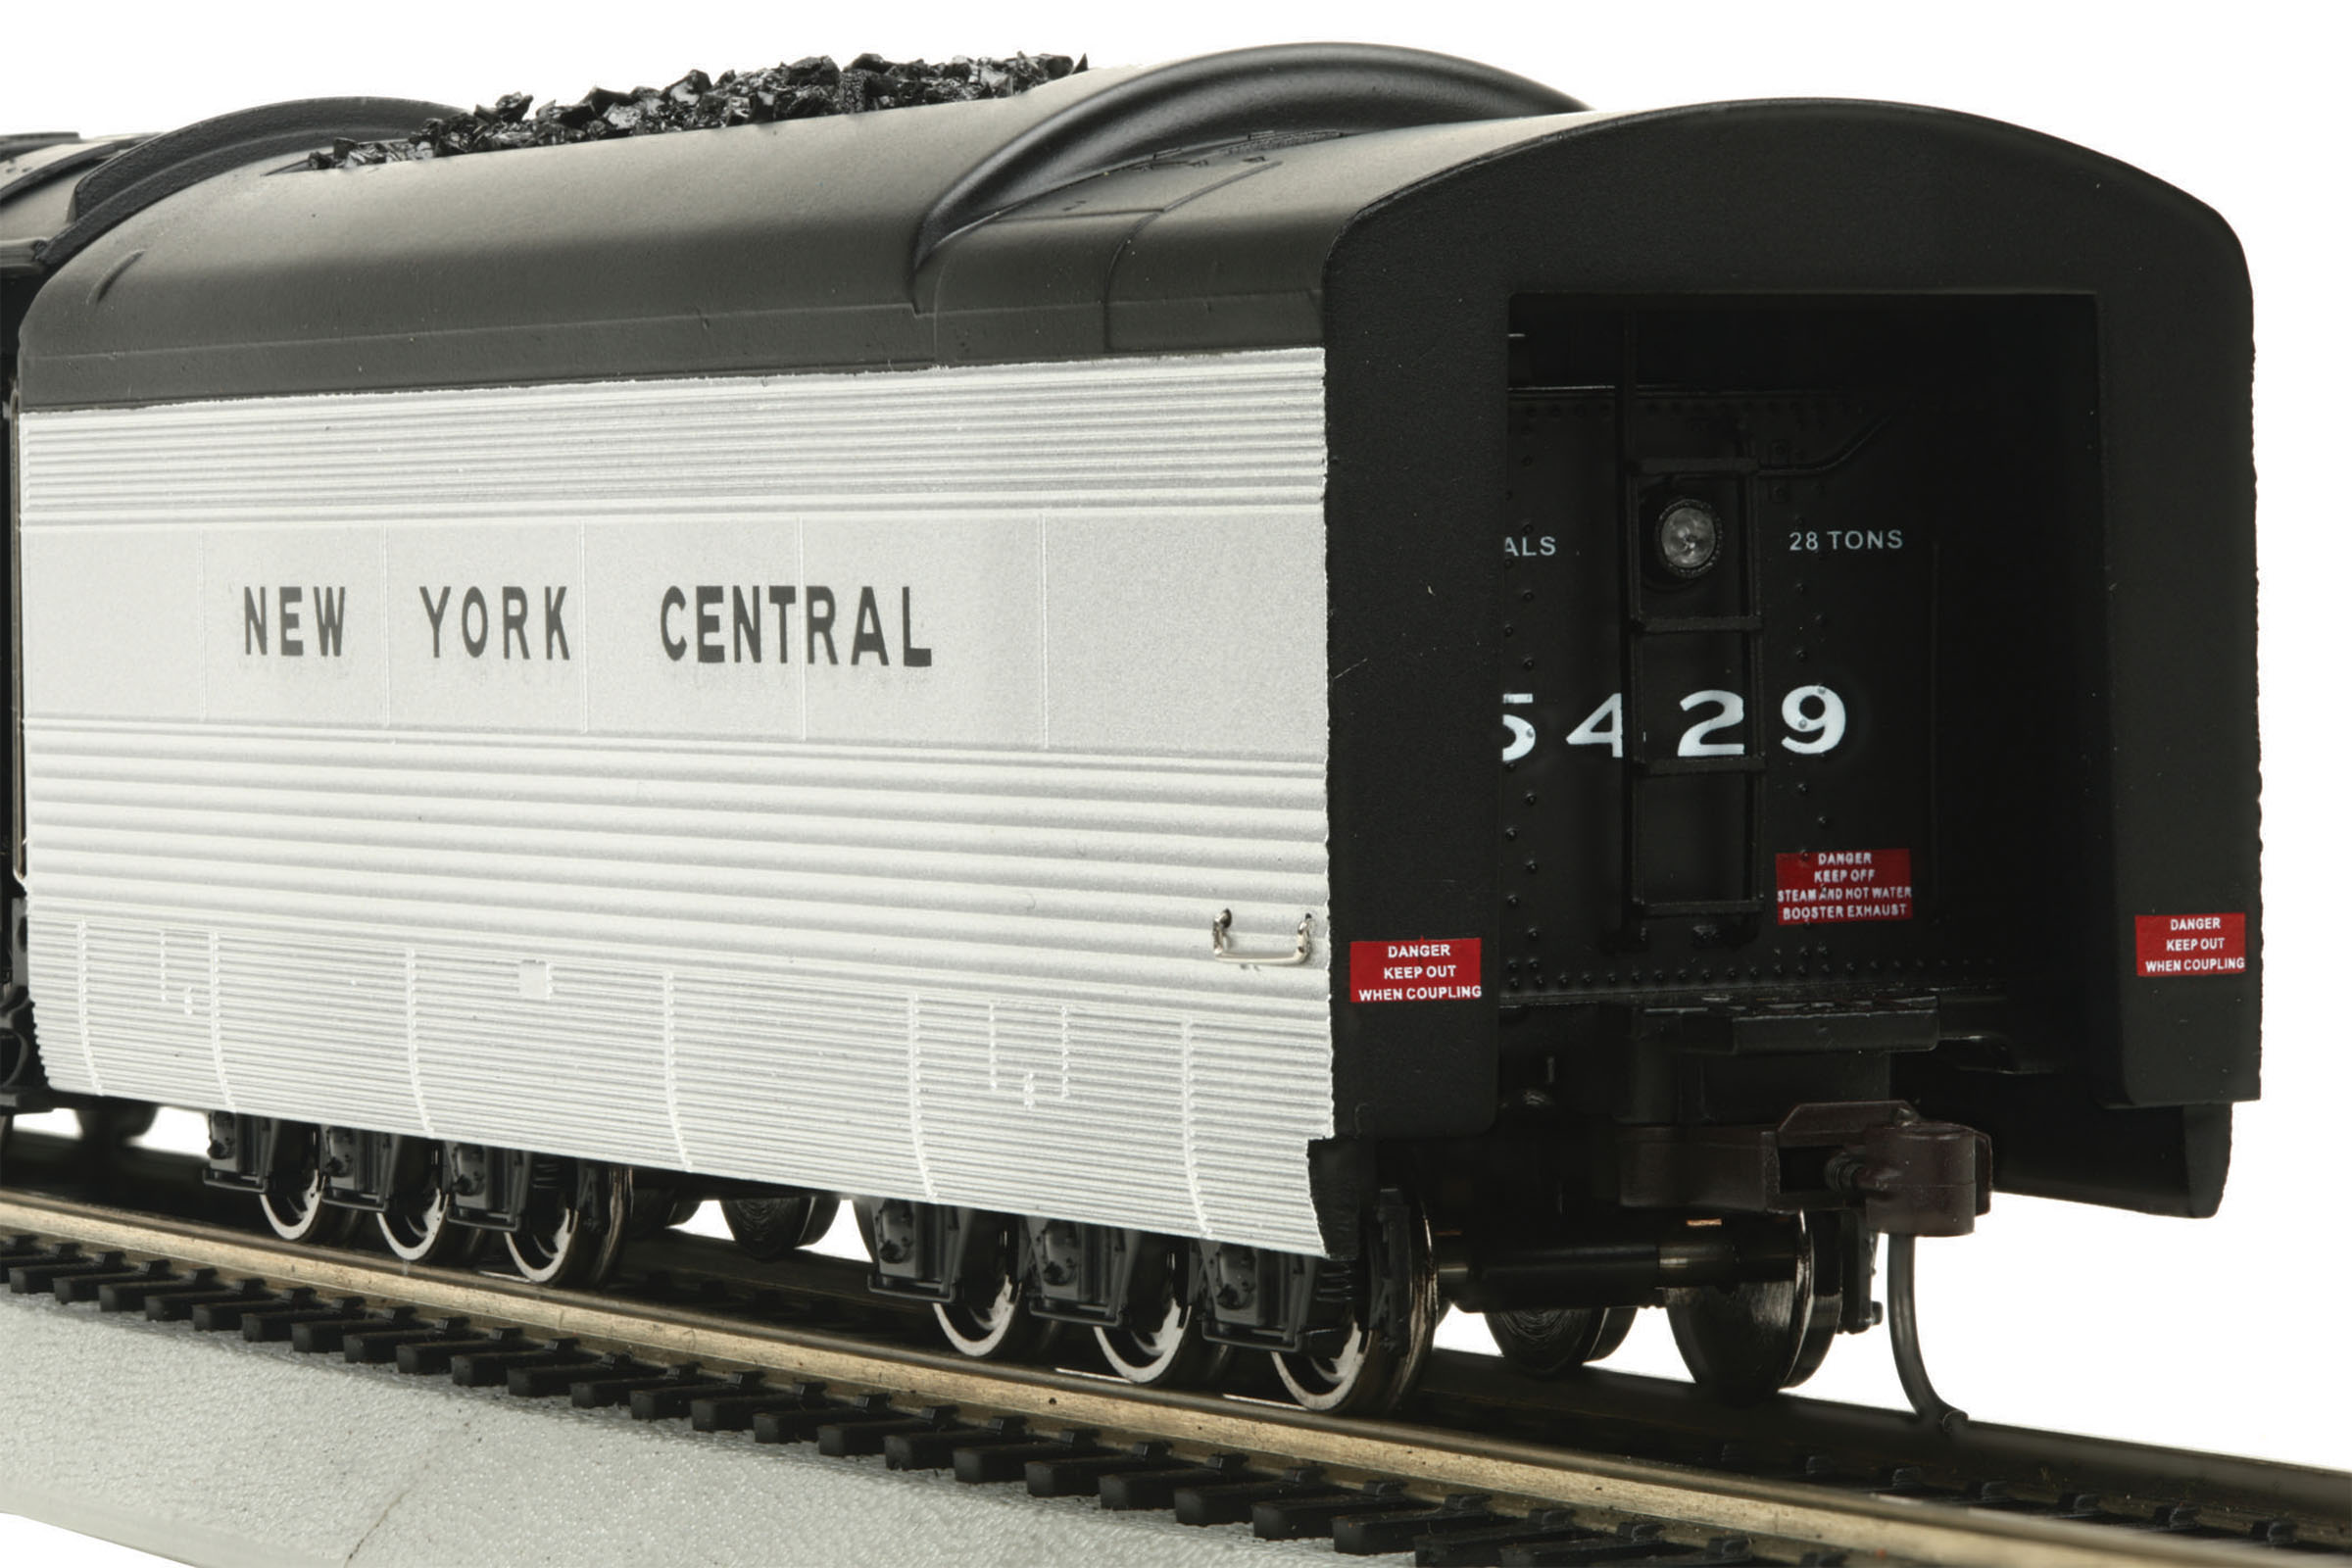 HO Scale MTH HO 4-6-4 Empire State Express Steam Engine w/Proto-Sound 3.0